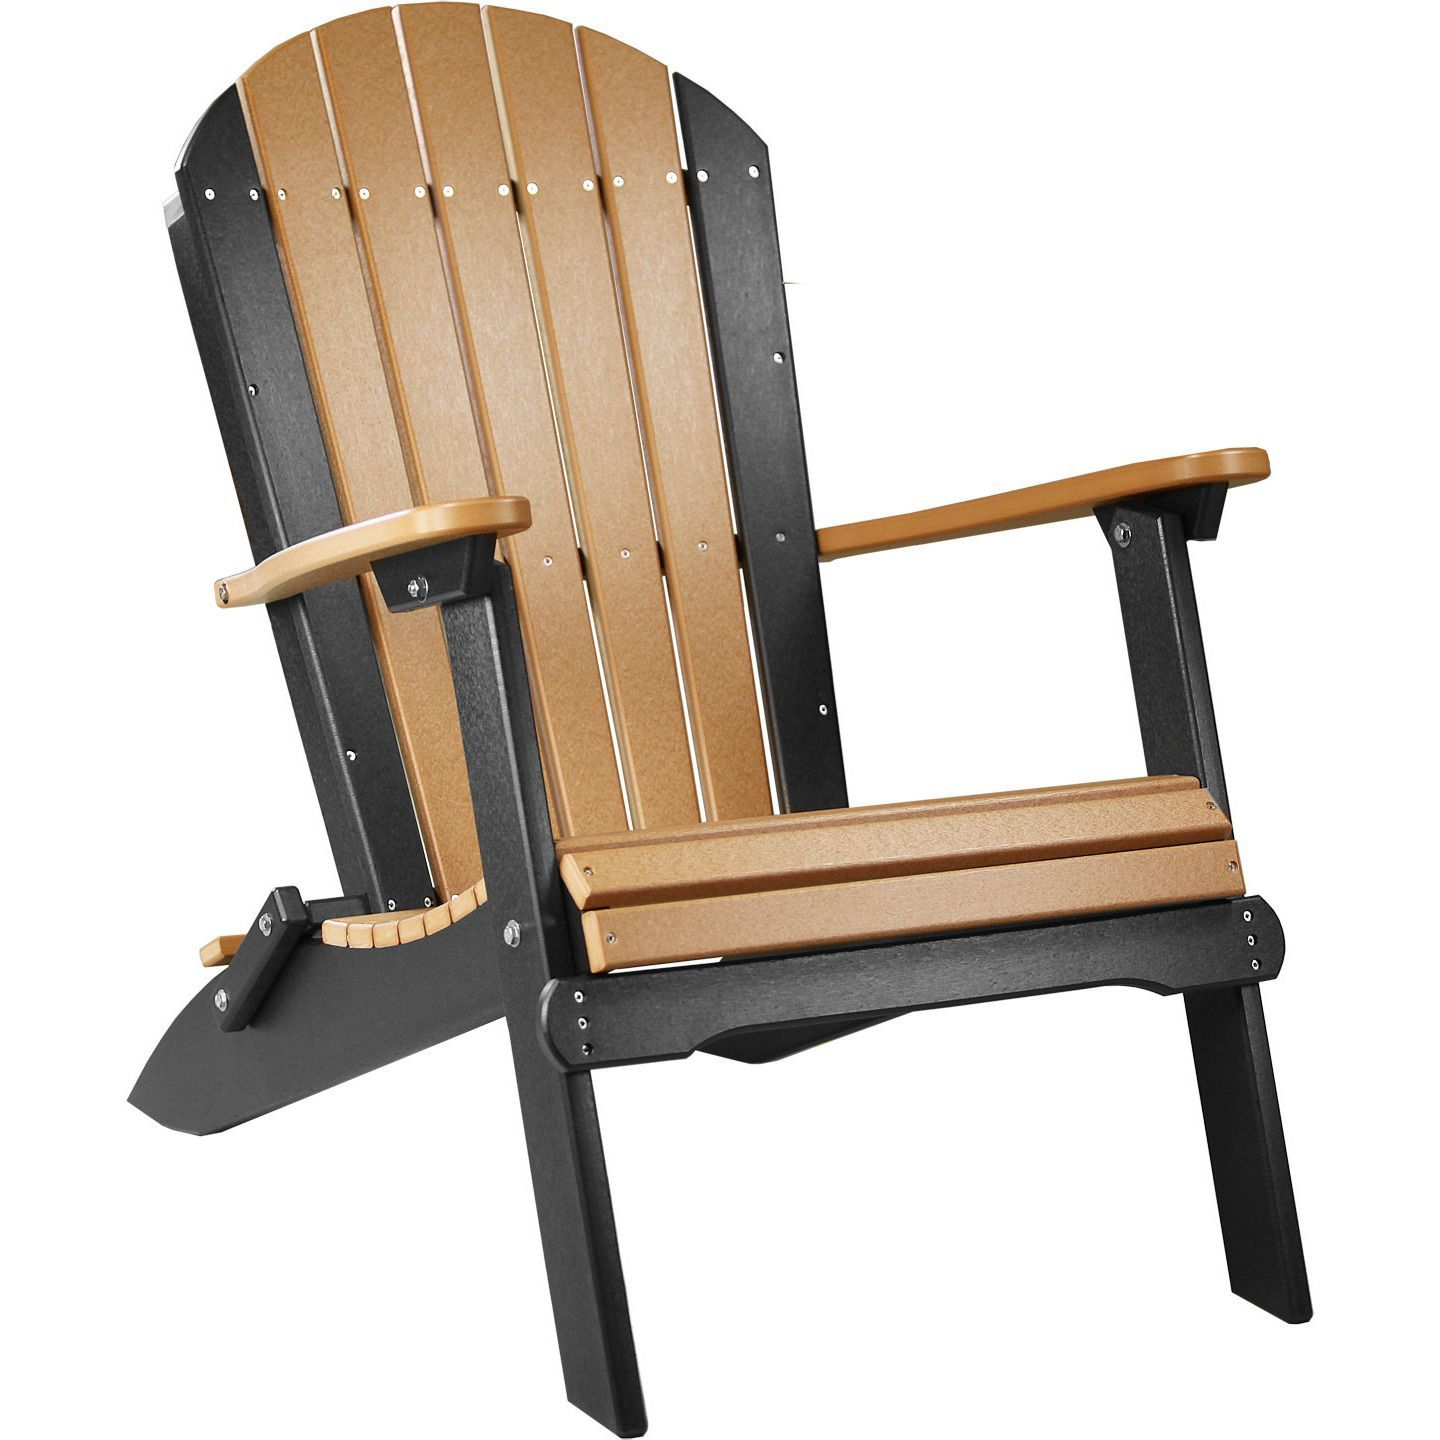 LuxCraft Folding Recycled Plastic Adirondack Chair